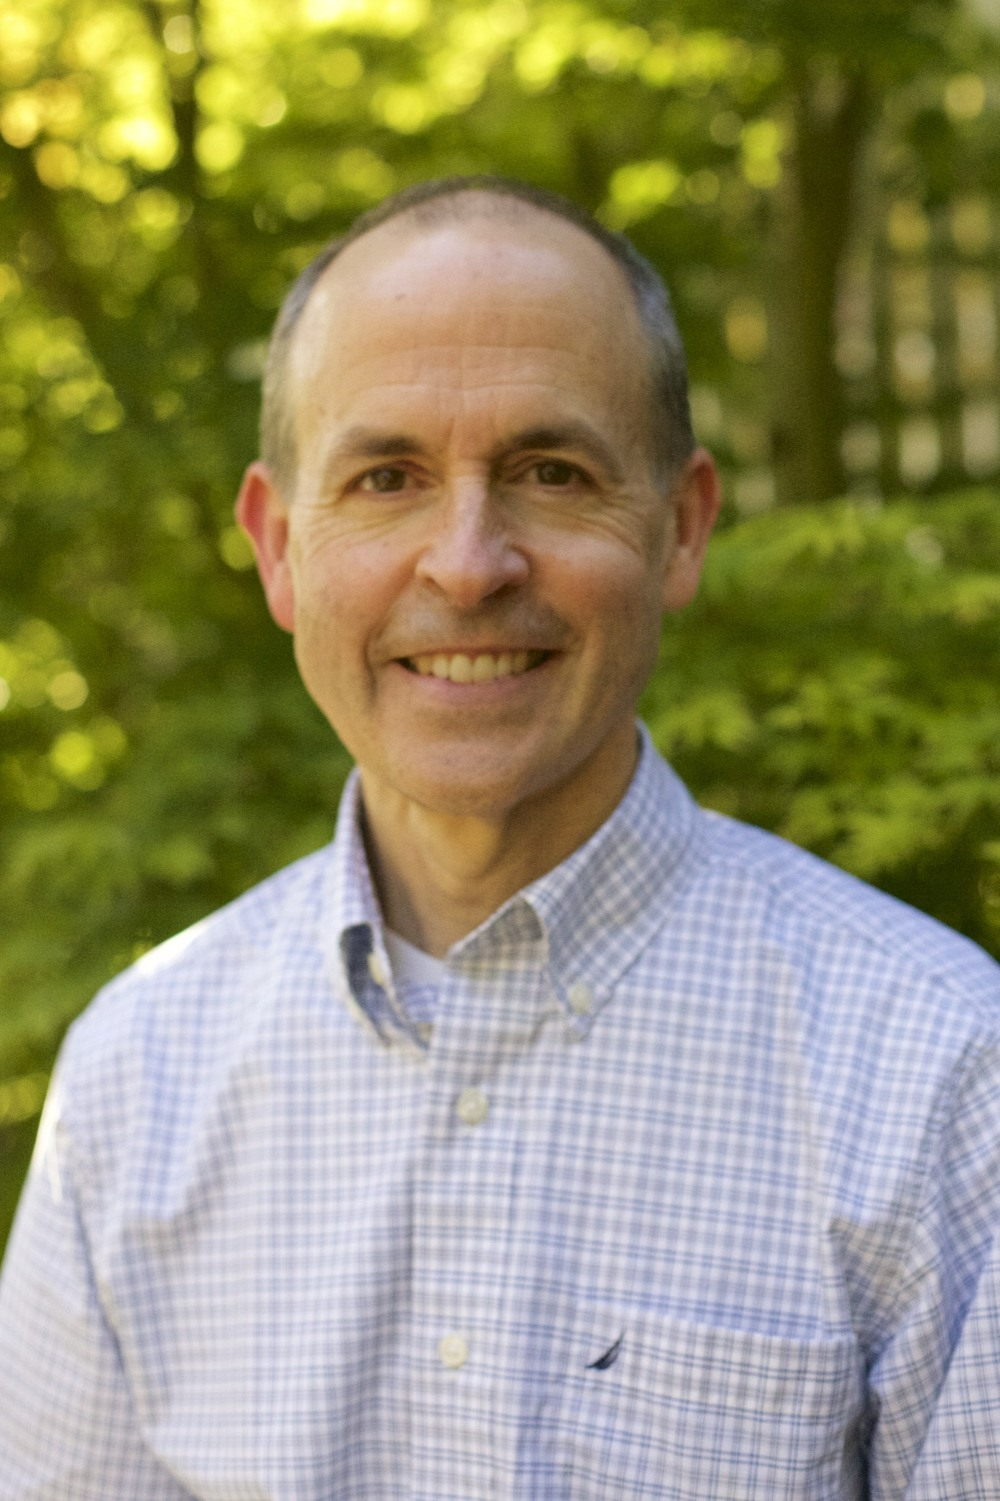 Bob viola, ma, lmhc, therapist ∙ Adolescents & Adults ∙ Dual Diagnosis ∙ Bipolar ∙ Shizophrenia ∙ Relationship Issues ∙ Parenting ∙ Anxiety ∙ Depression ∙ DBT ∙ Mindfulness ∙ Trauma